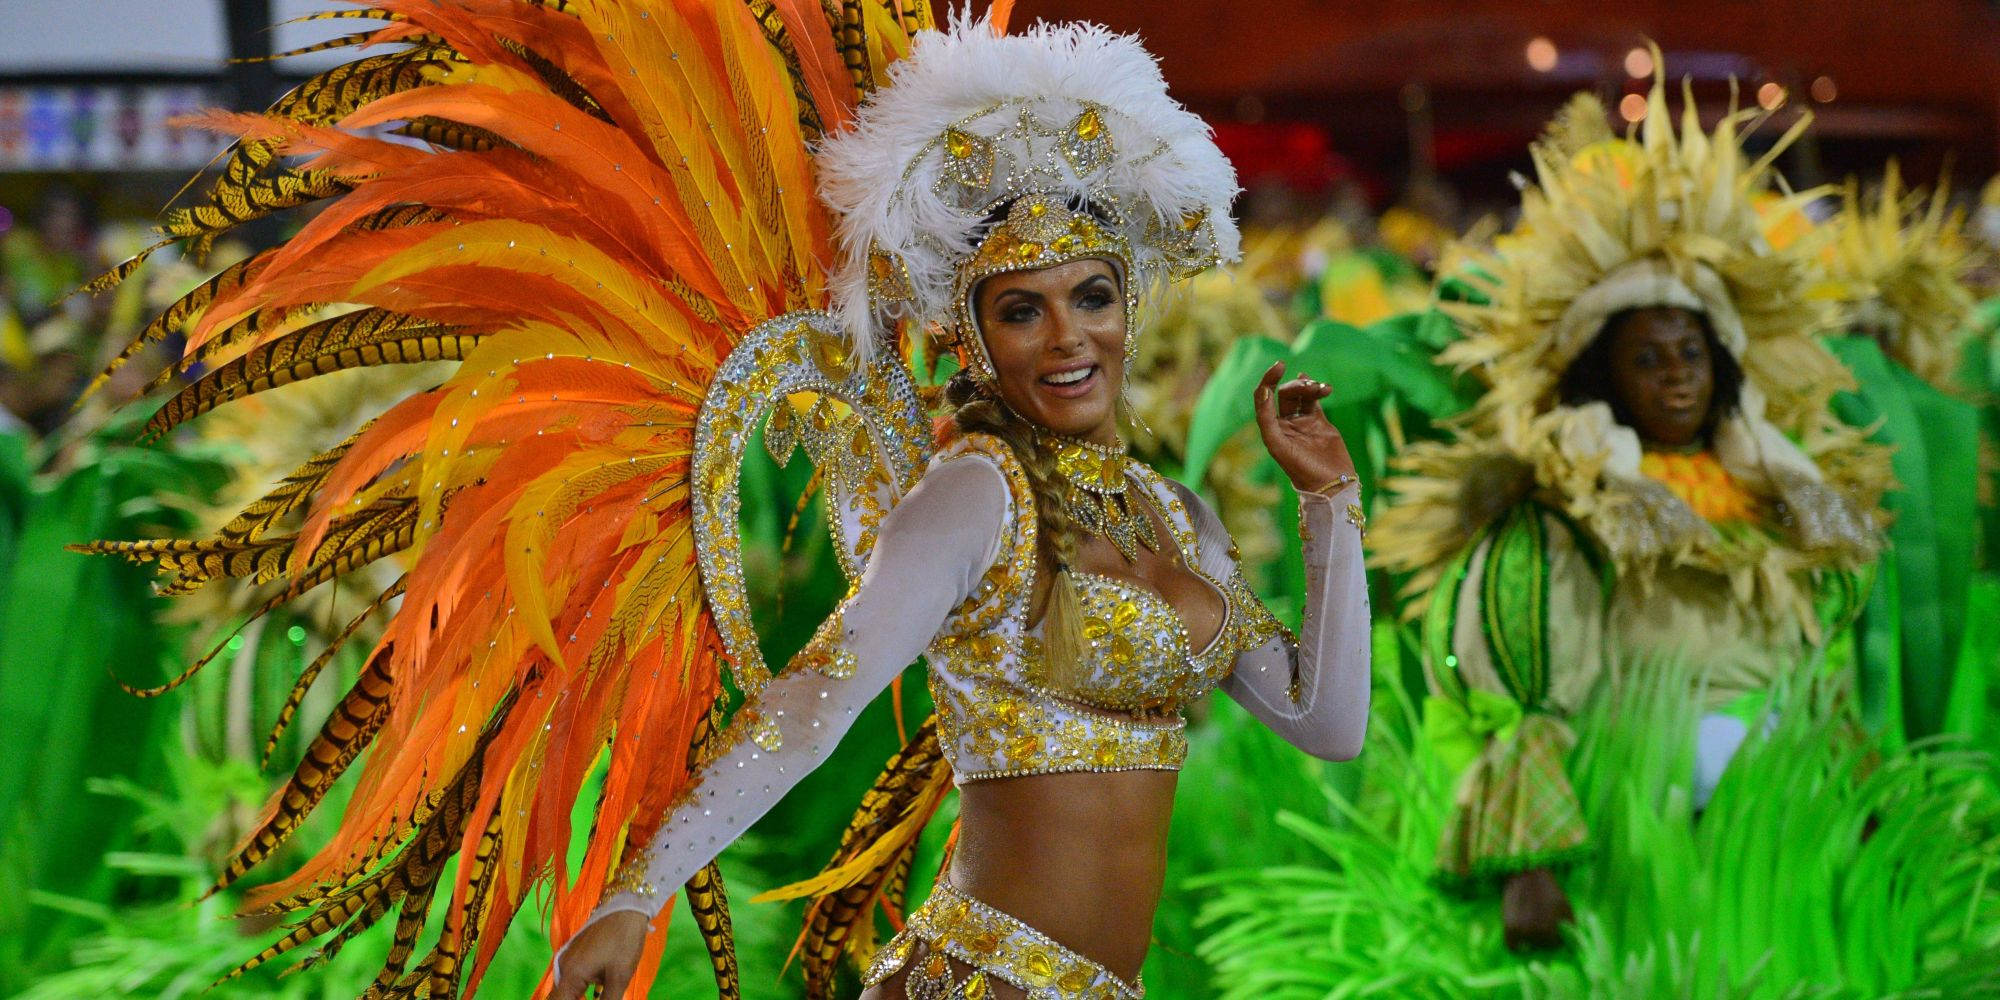 Top Brasil s 10 carnavales - Lonely Planet